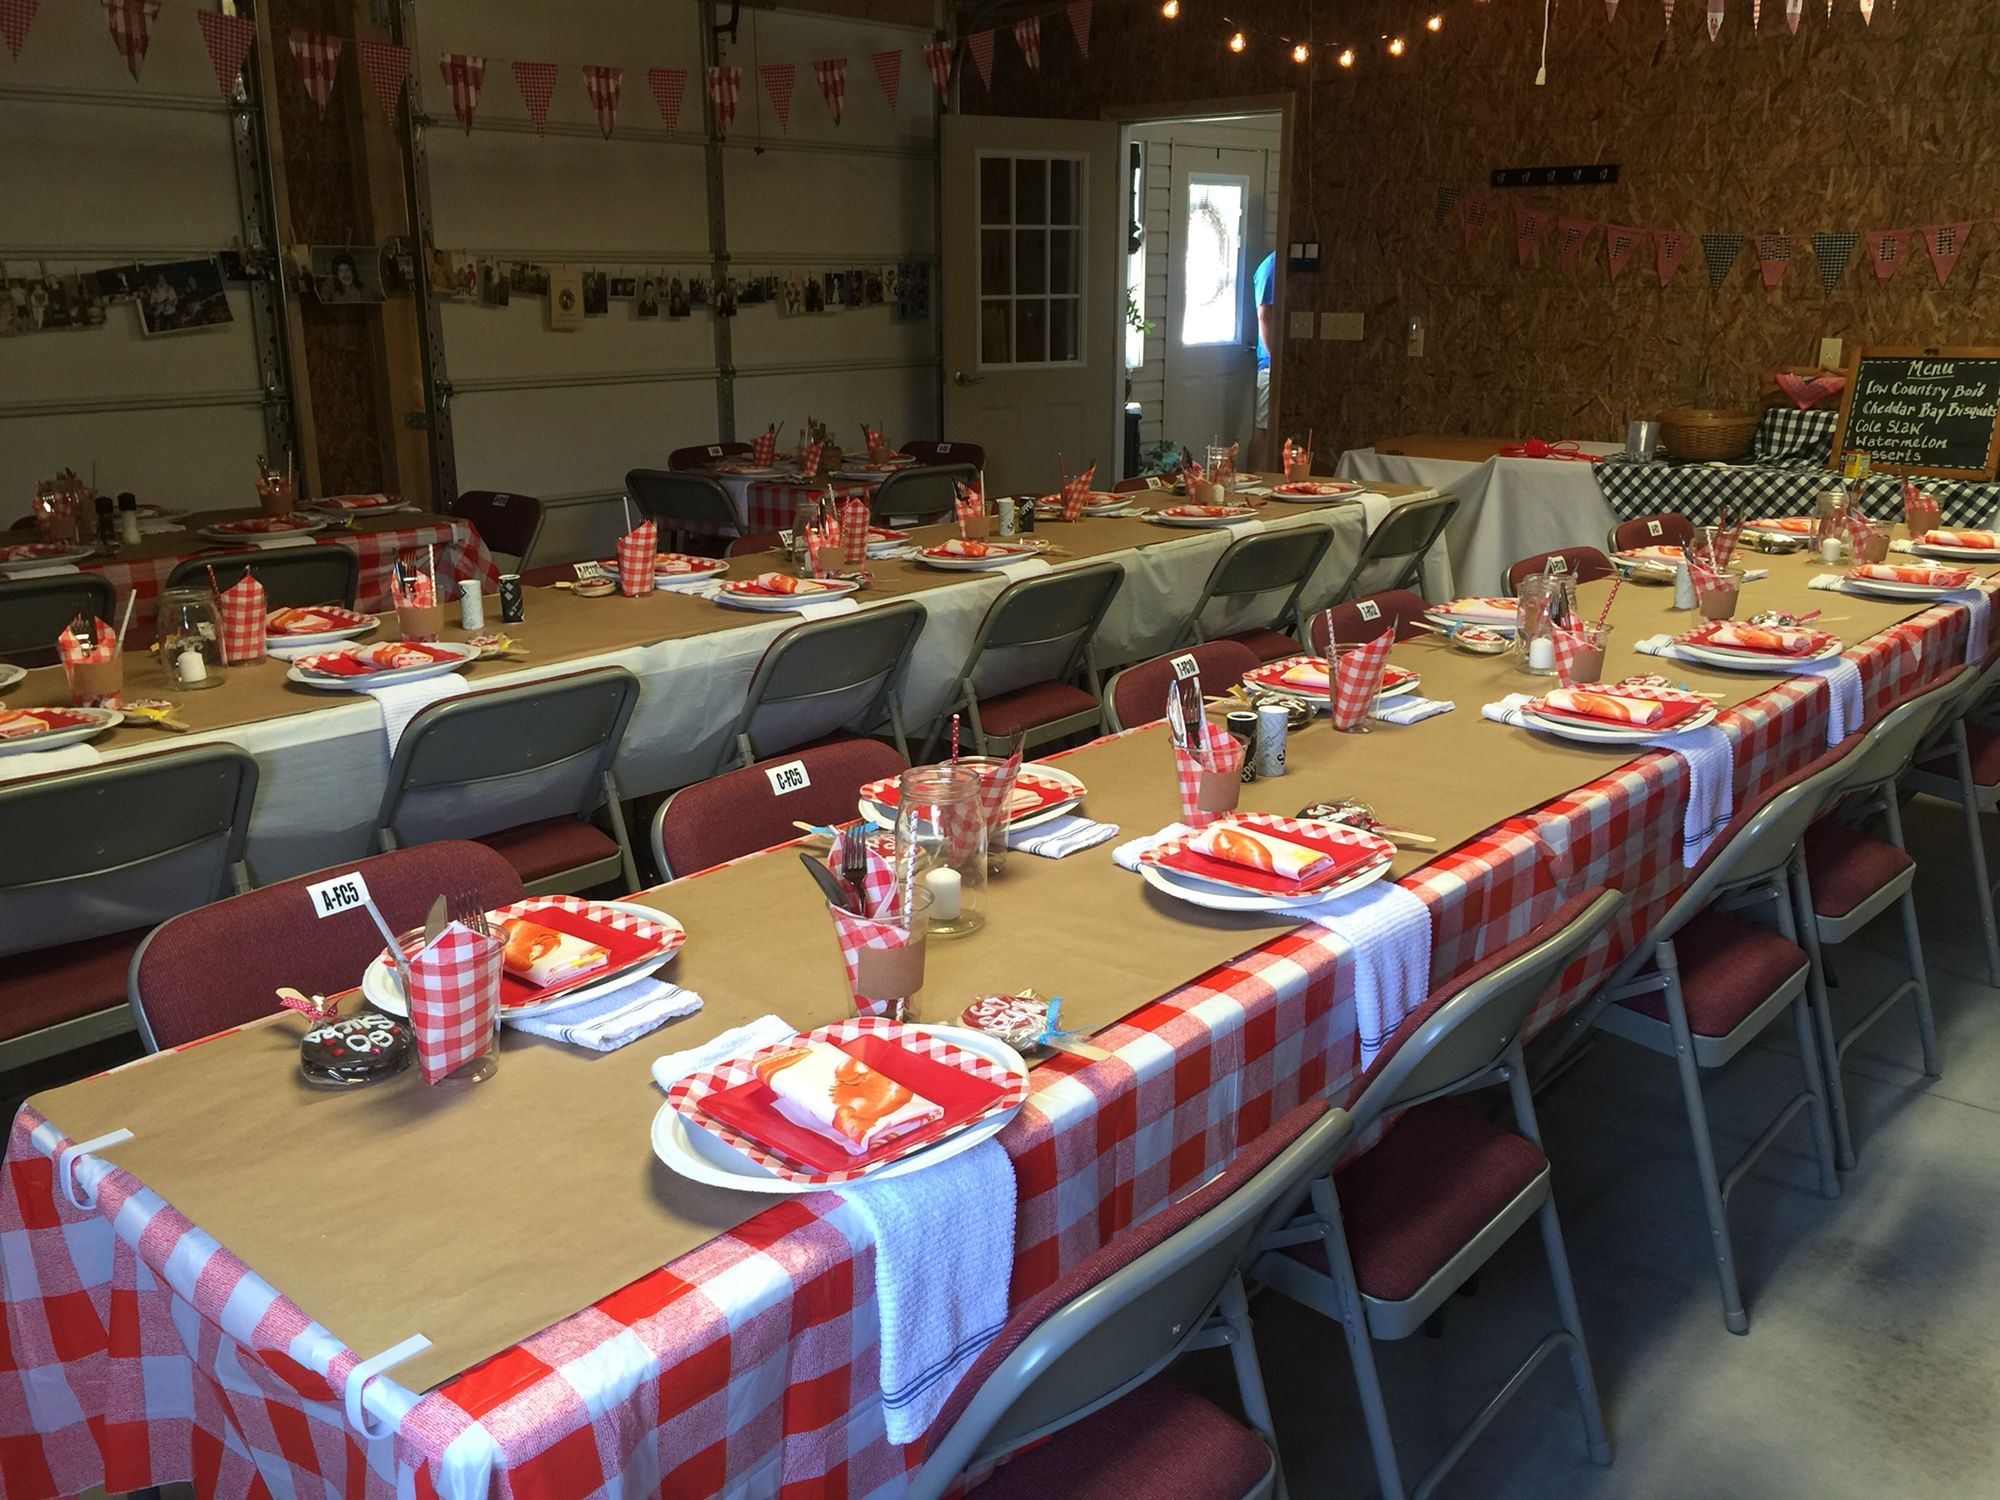 The Tables All Set For The Low Country Boil Birthday Party There